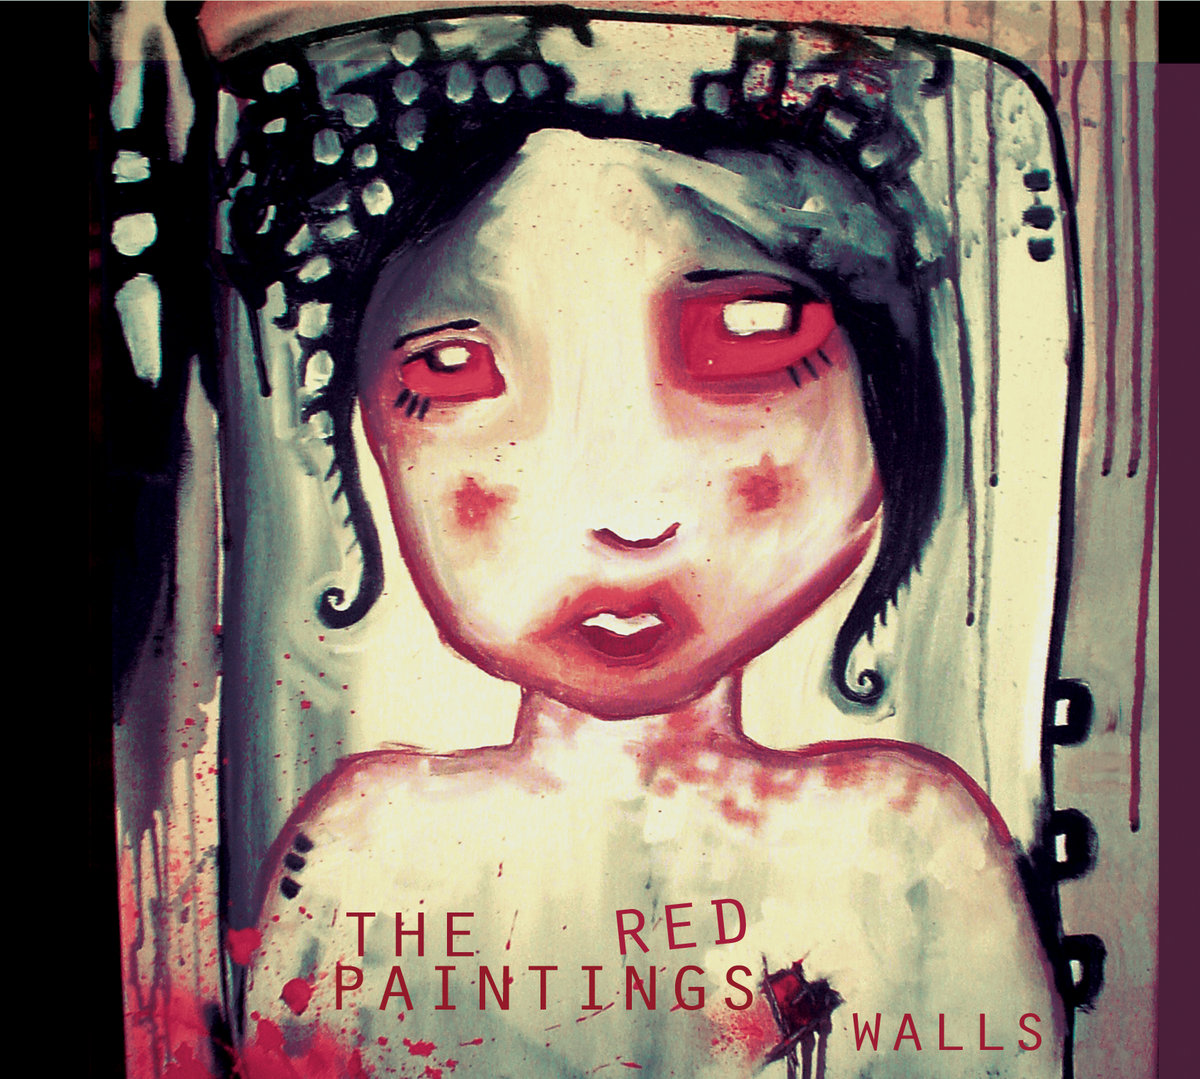 This mad, mad world of painting